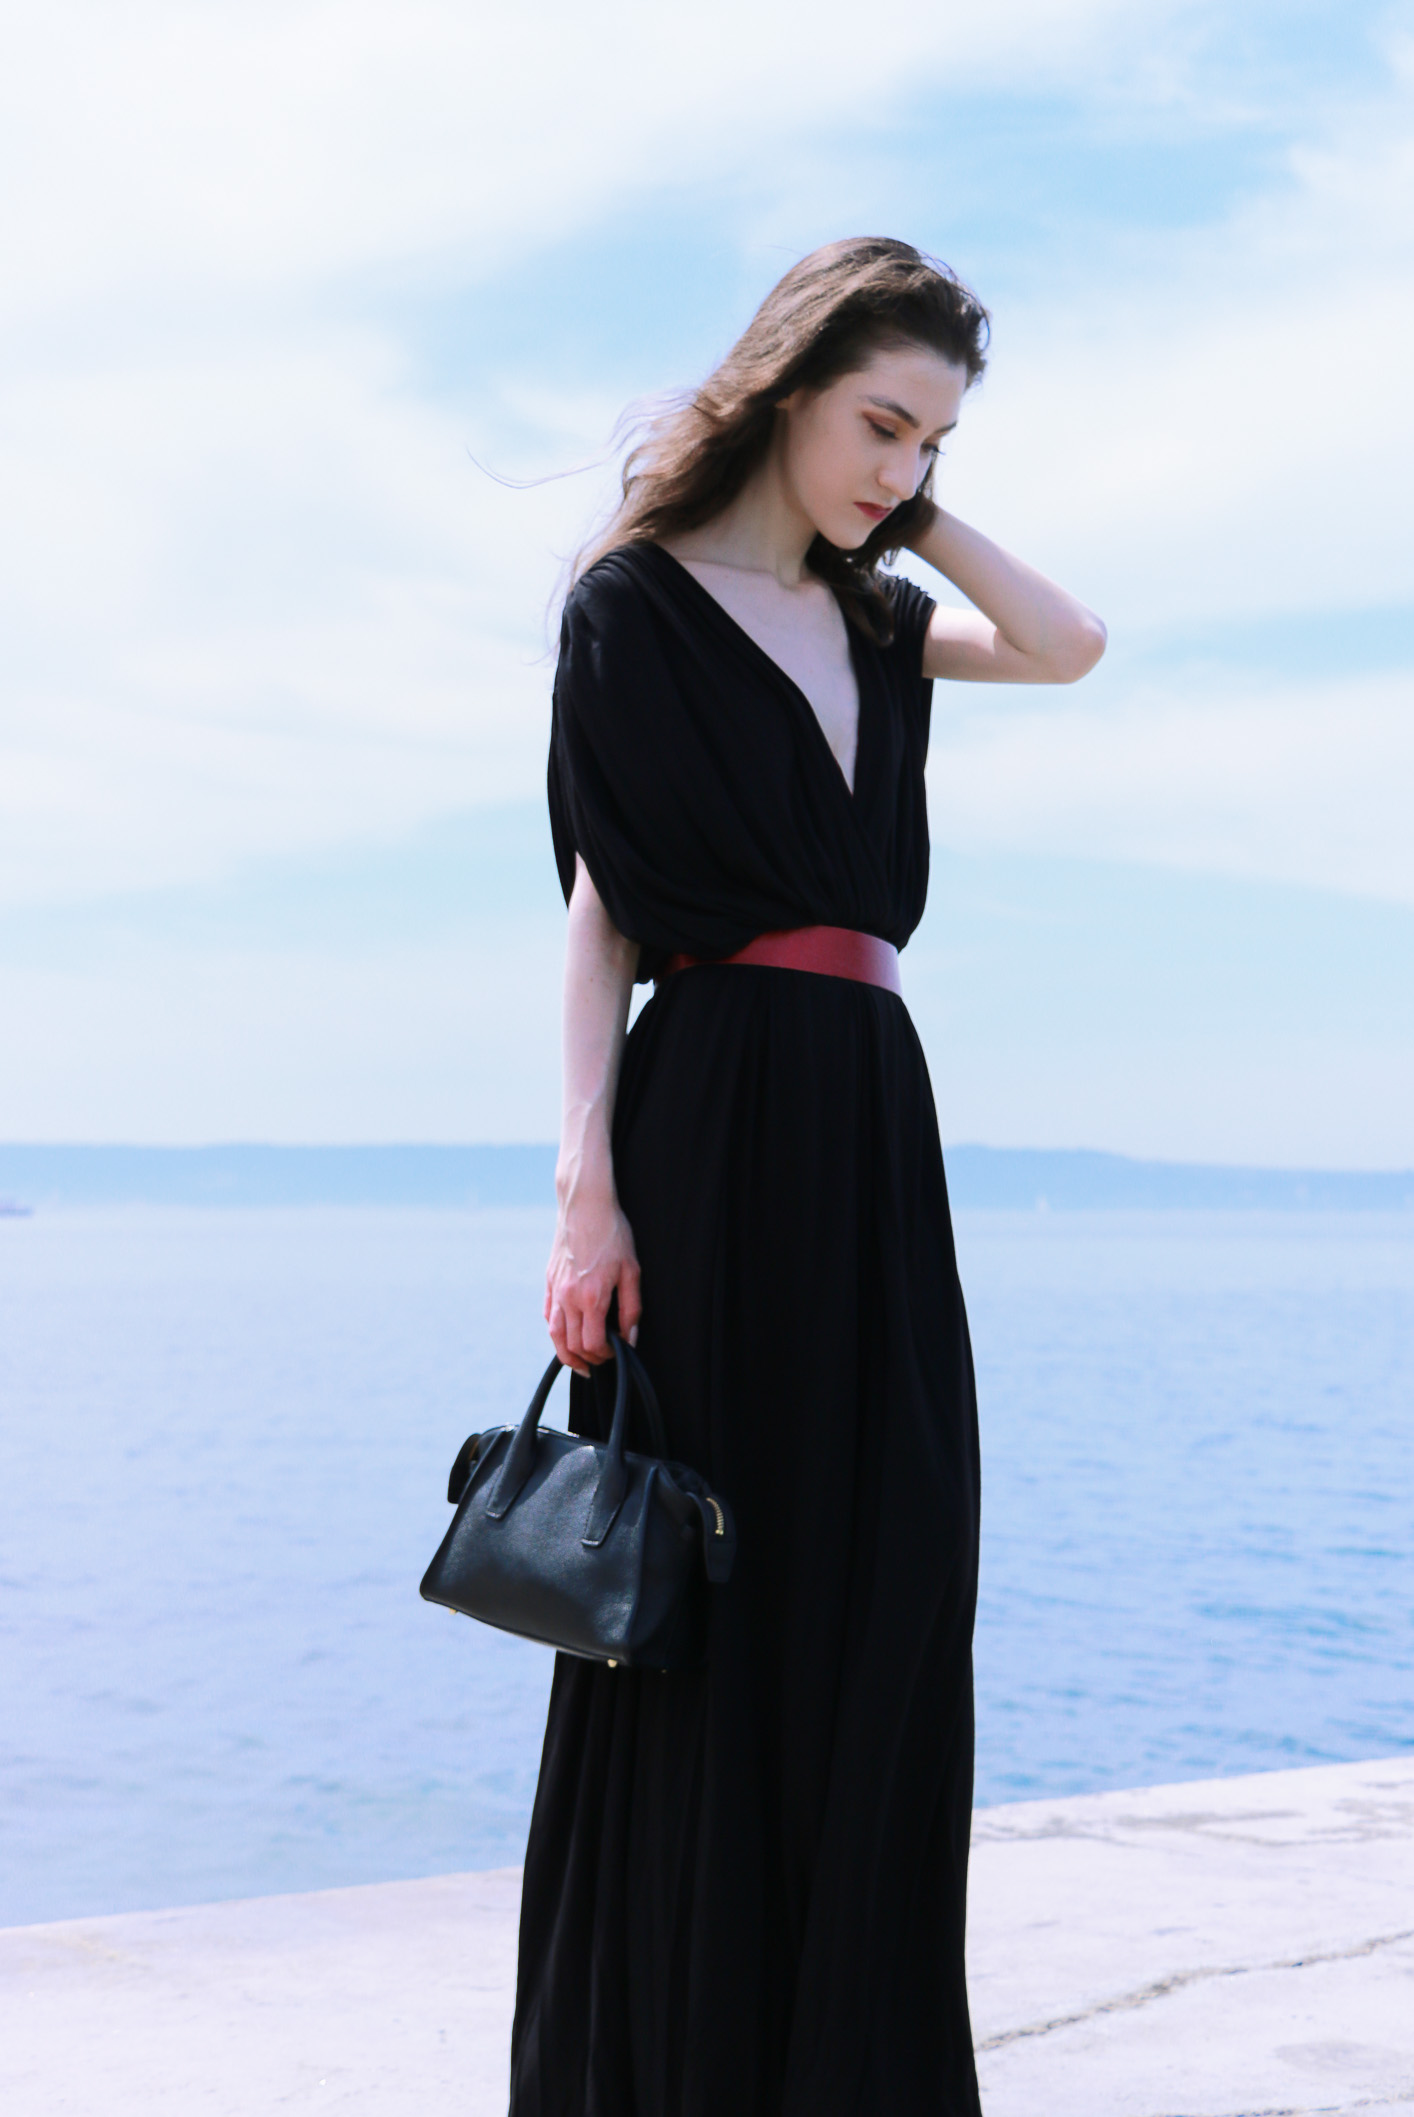 Fashion blogger Veronika Lipar of Brunette From Wall Street sharing how to dress up up to black tie dress code